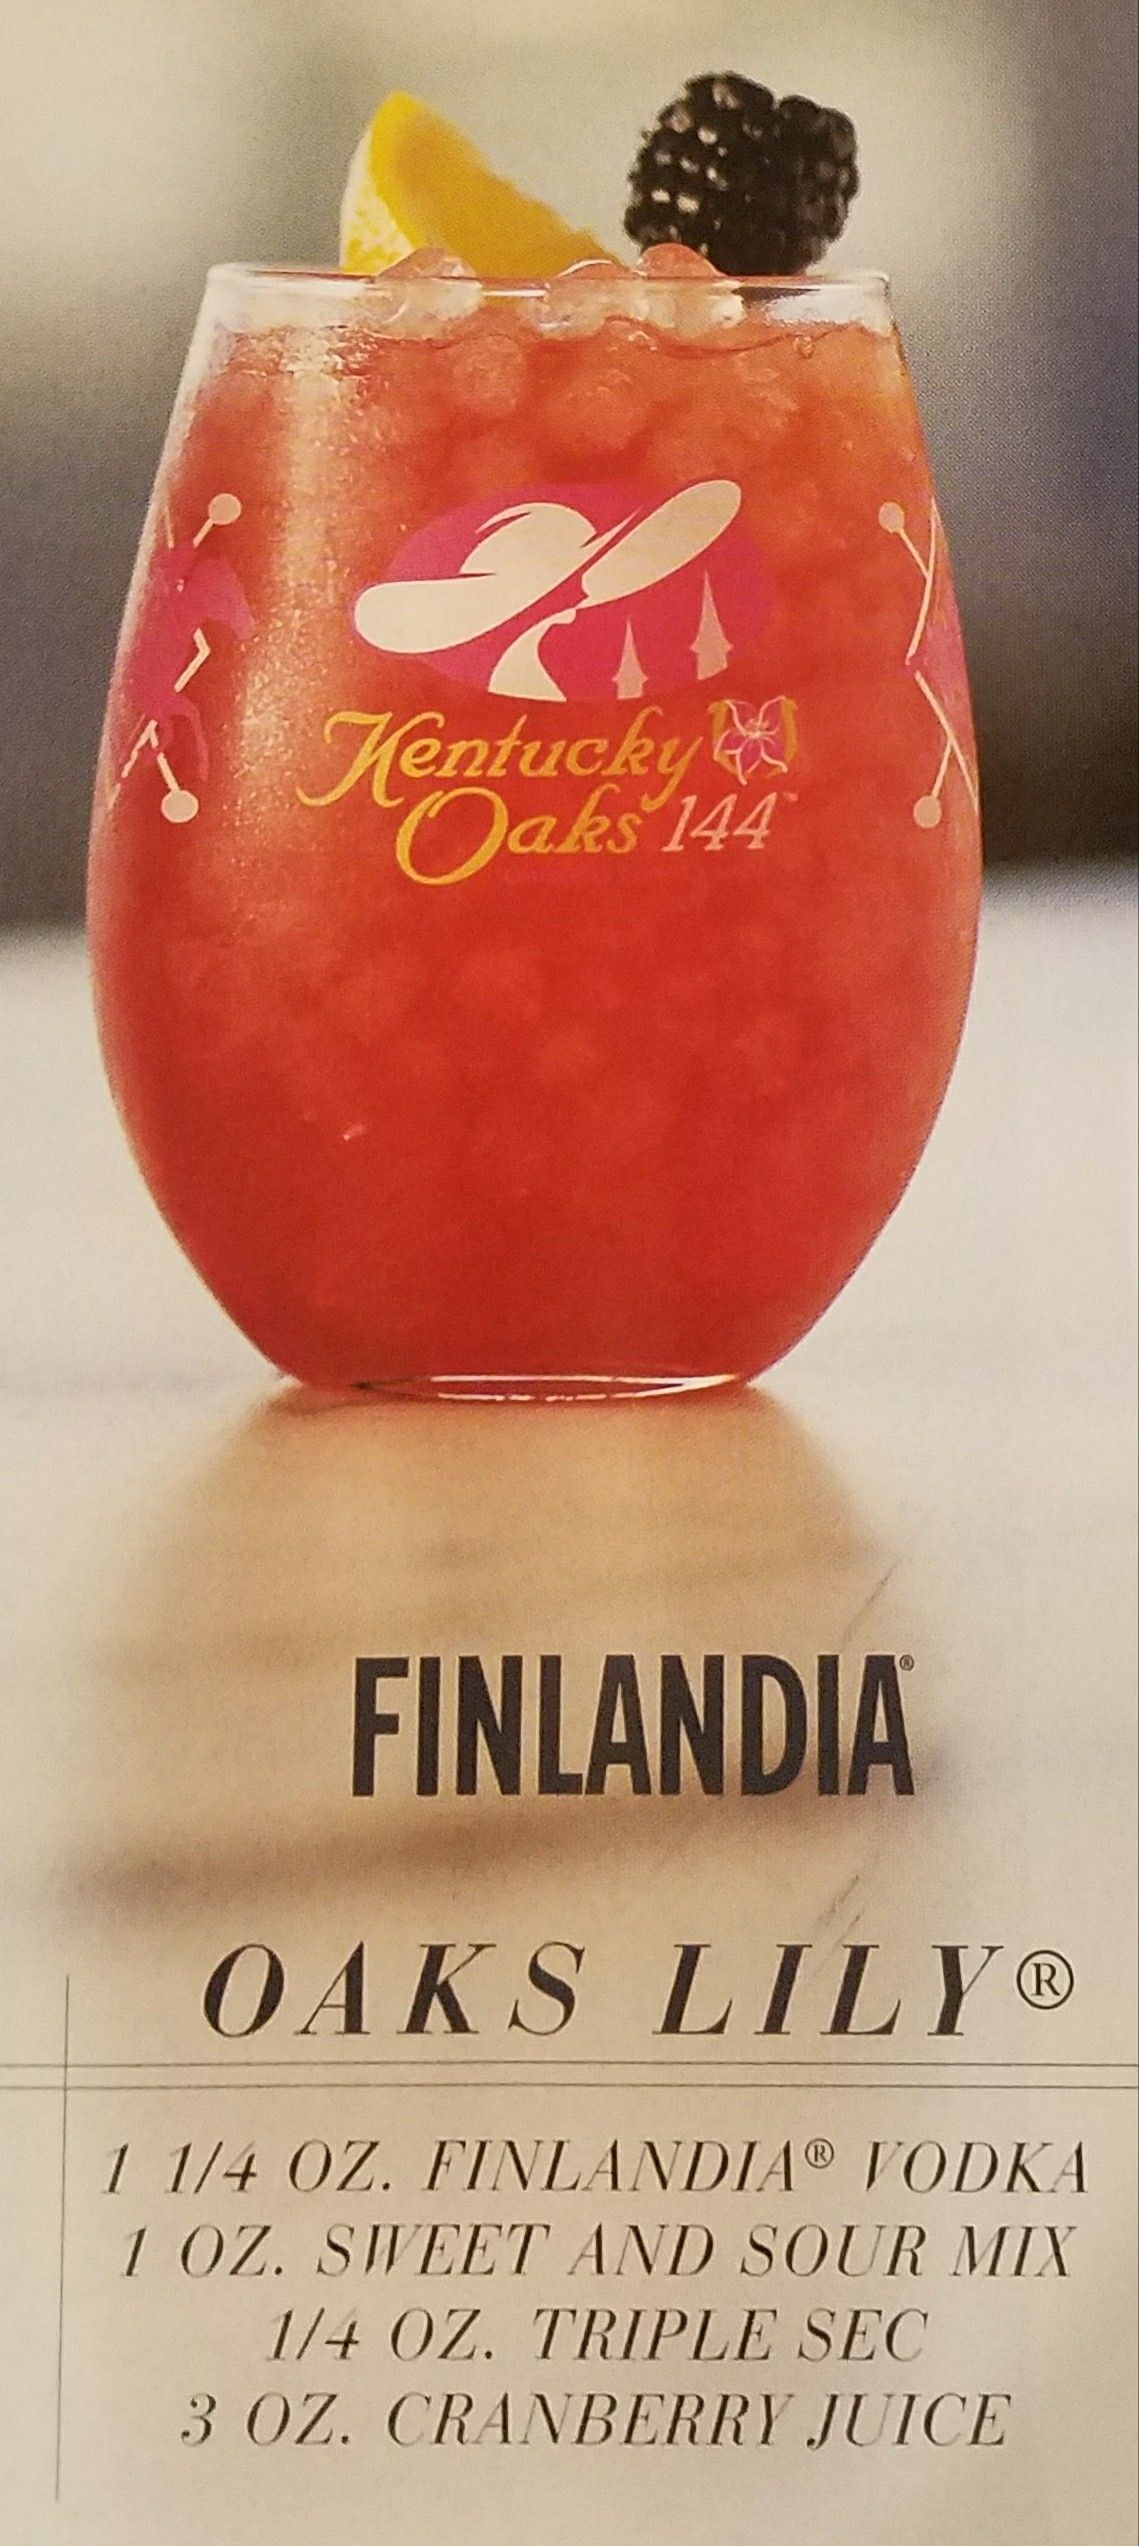 Oaks Lily Finlandia Vodka Stemless Wine Glass Cranberry Juice